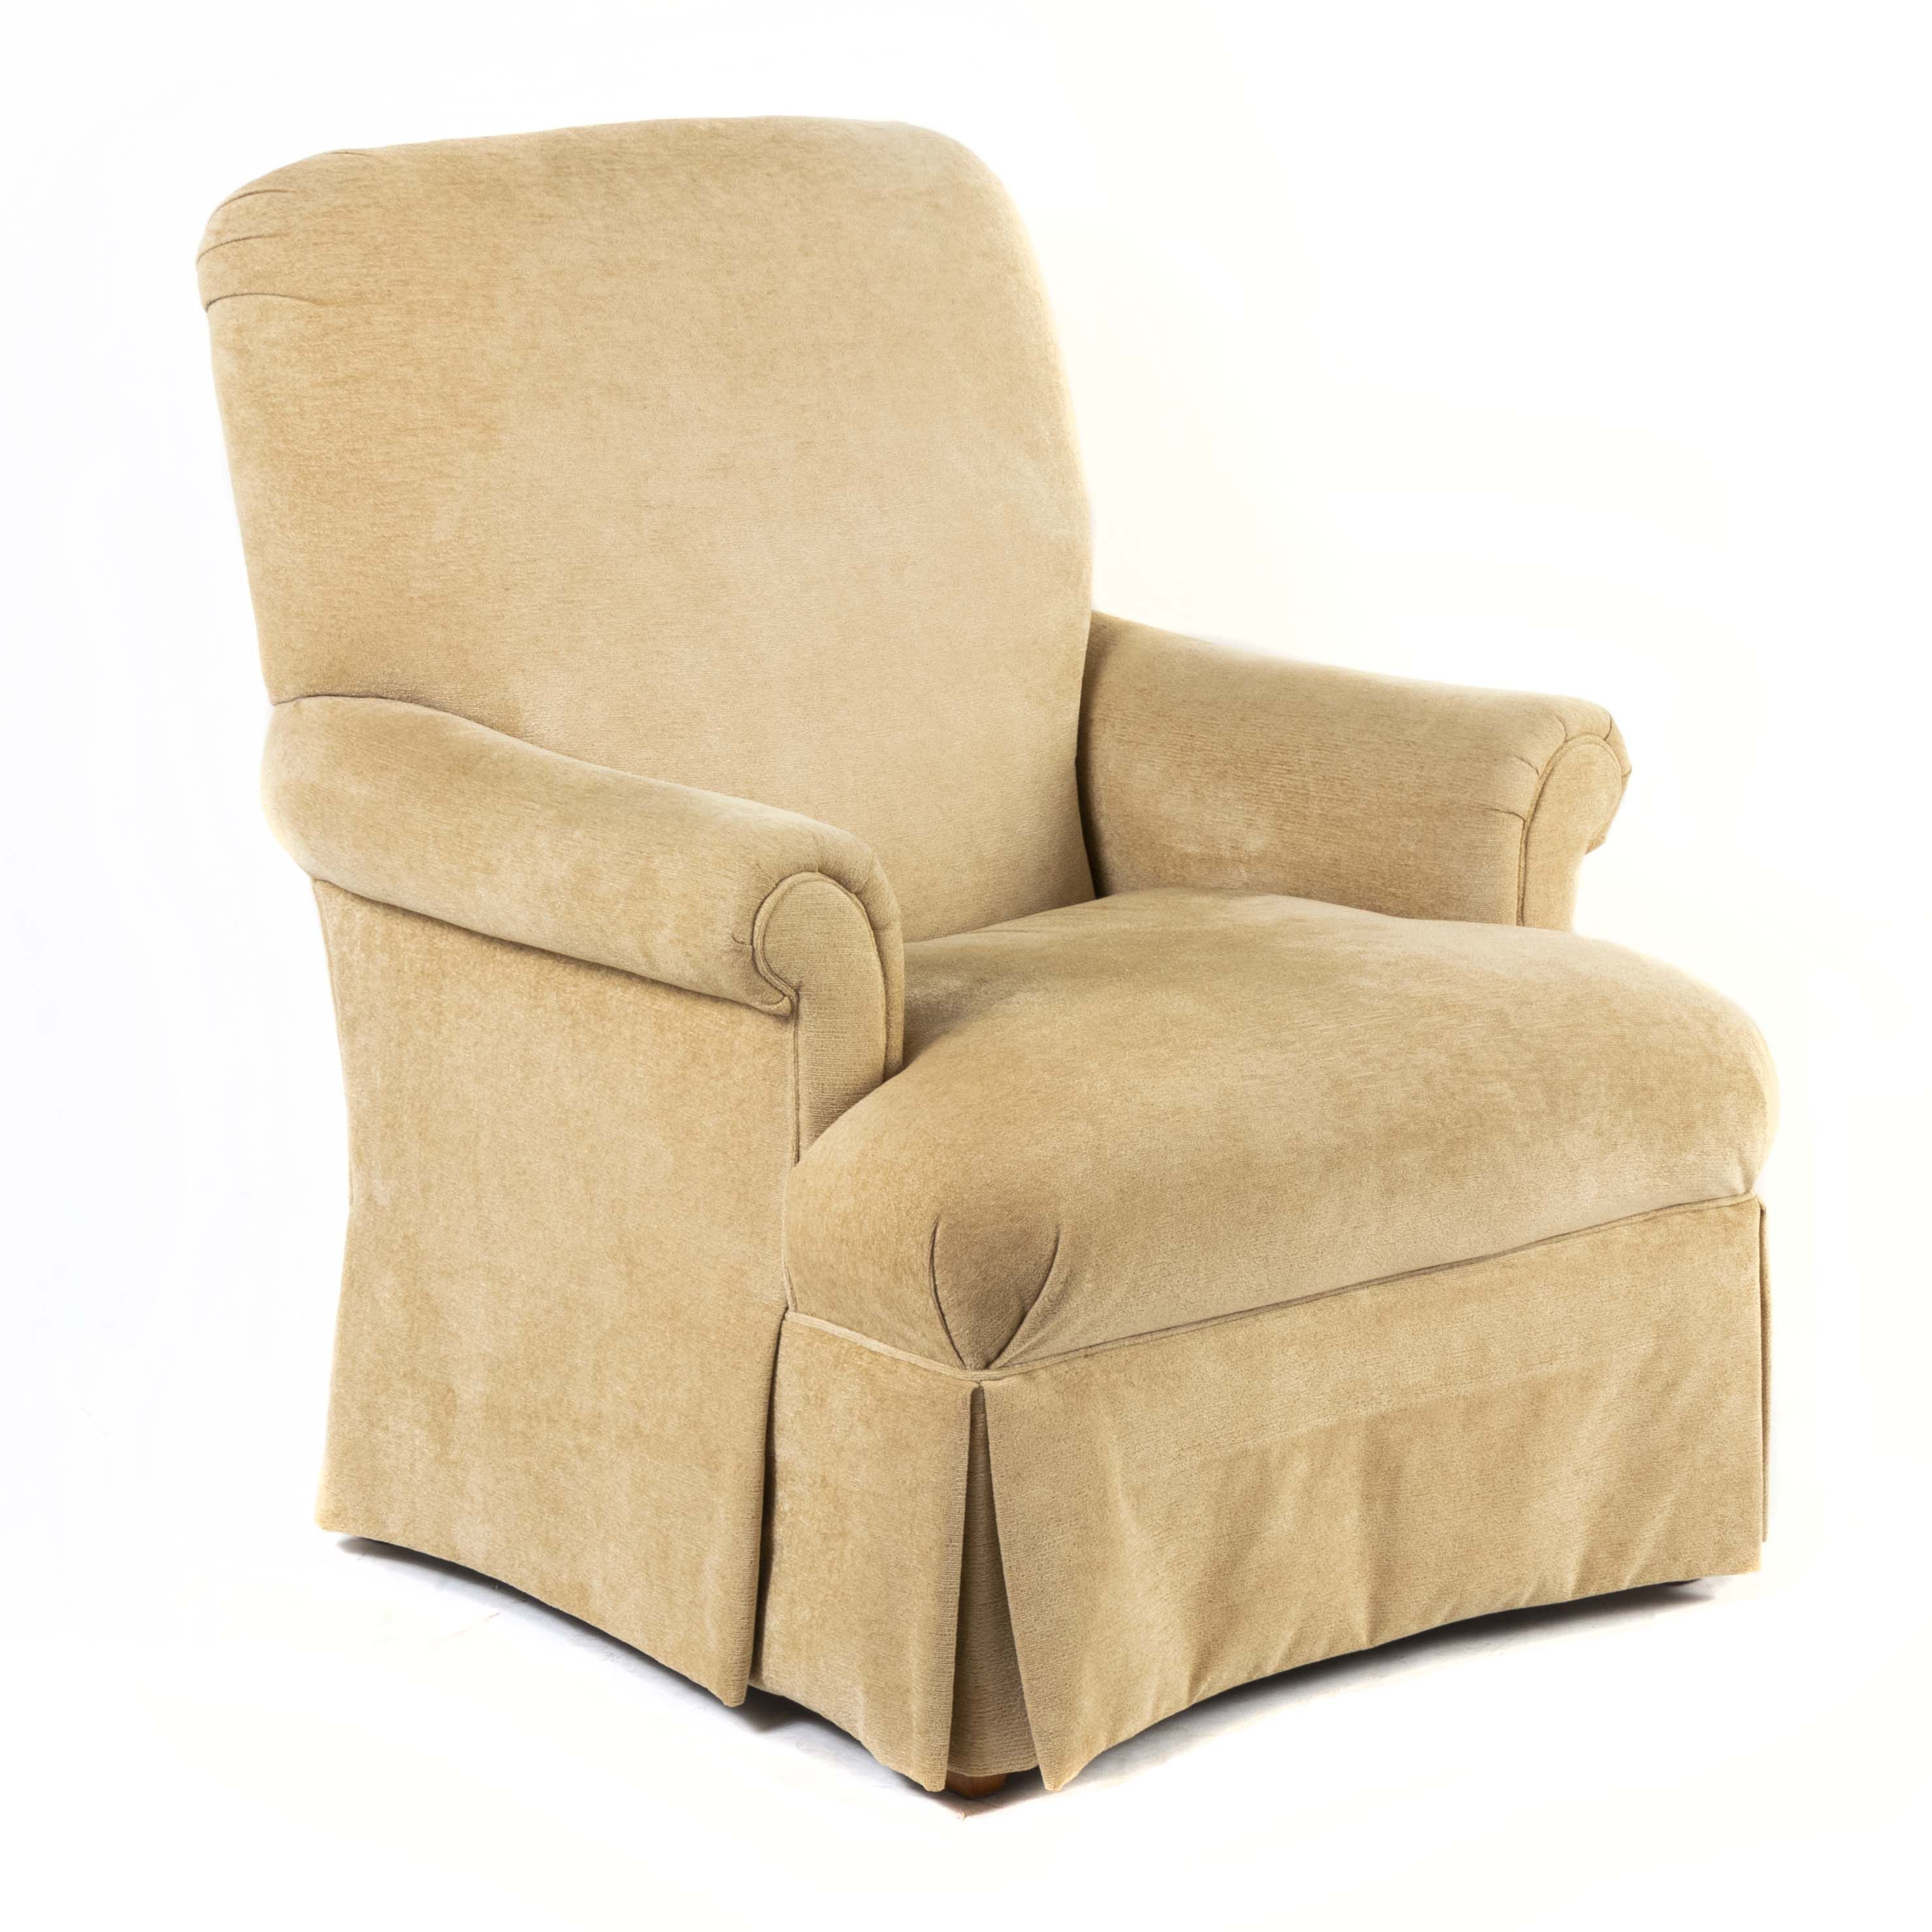 This Armchair From Pearson Makes A Lovely Accent Chair With A